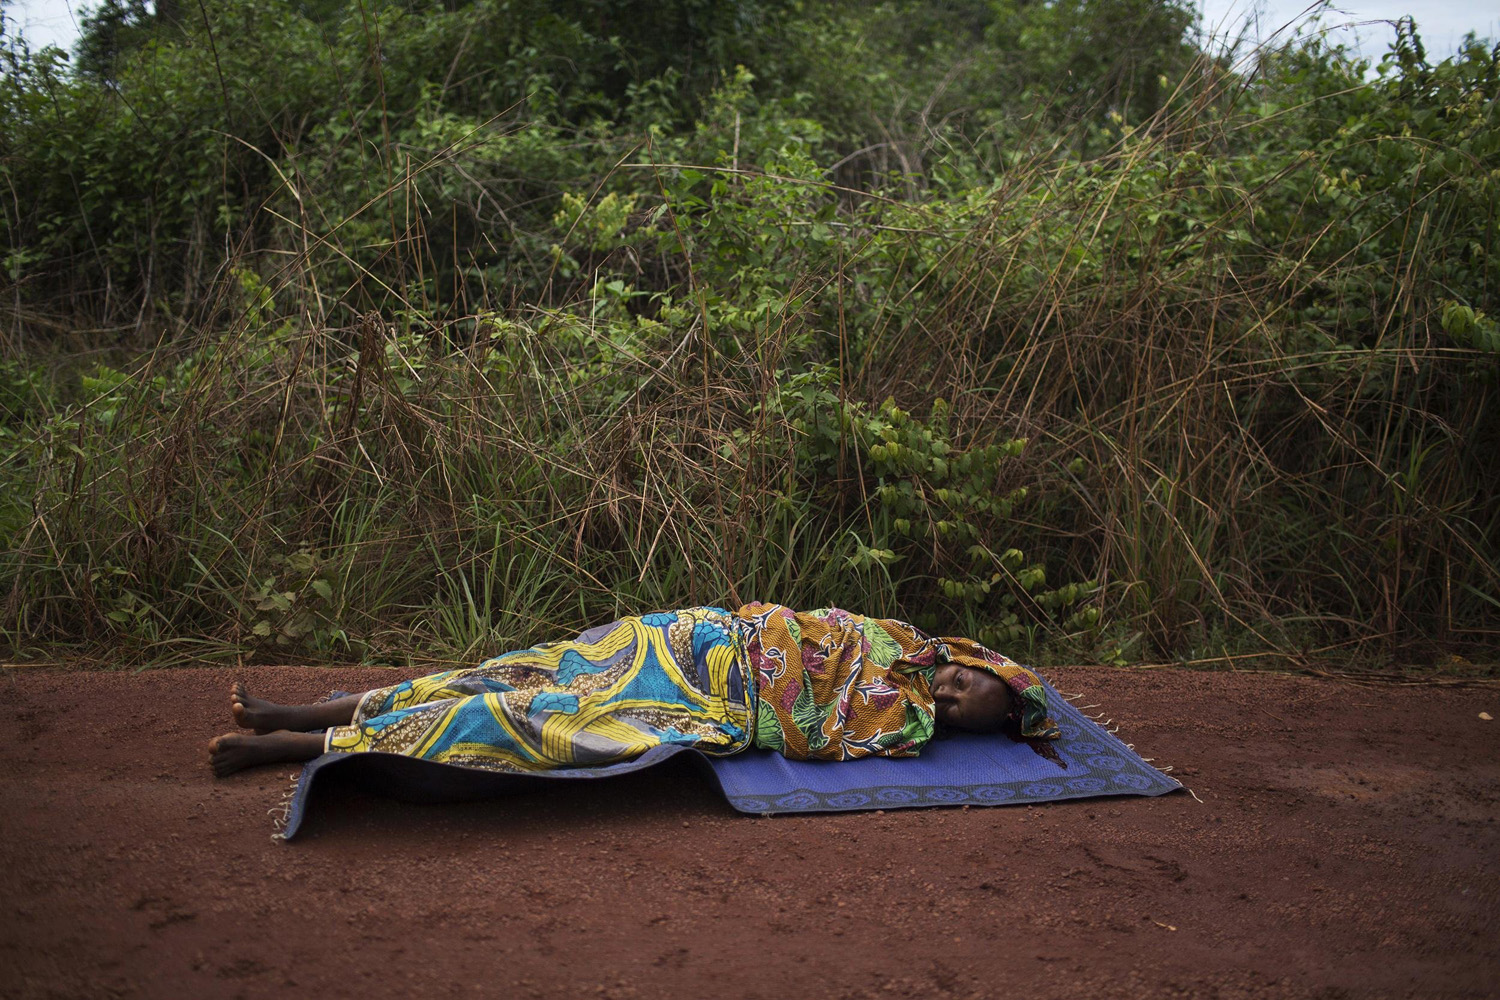 Apr. 28, 2014. A woman lies on the road dying from a gunshot wound to the head close to the village of Dekoua after the armed peacekeeping convoy from the African Union operation in CAR (MISCA) she was travelling in came under attack by anti Balaka militiamen.